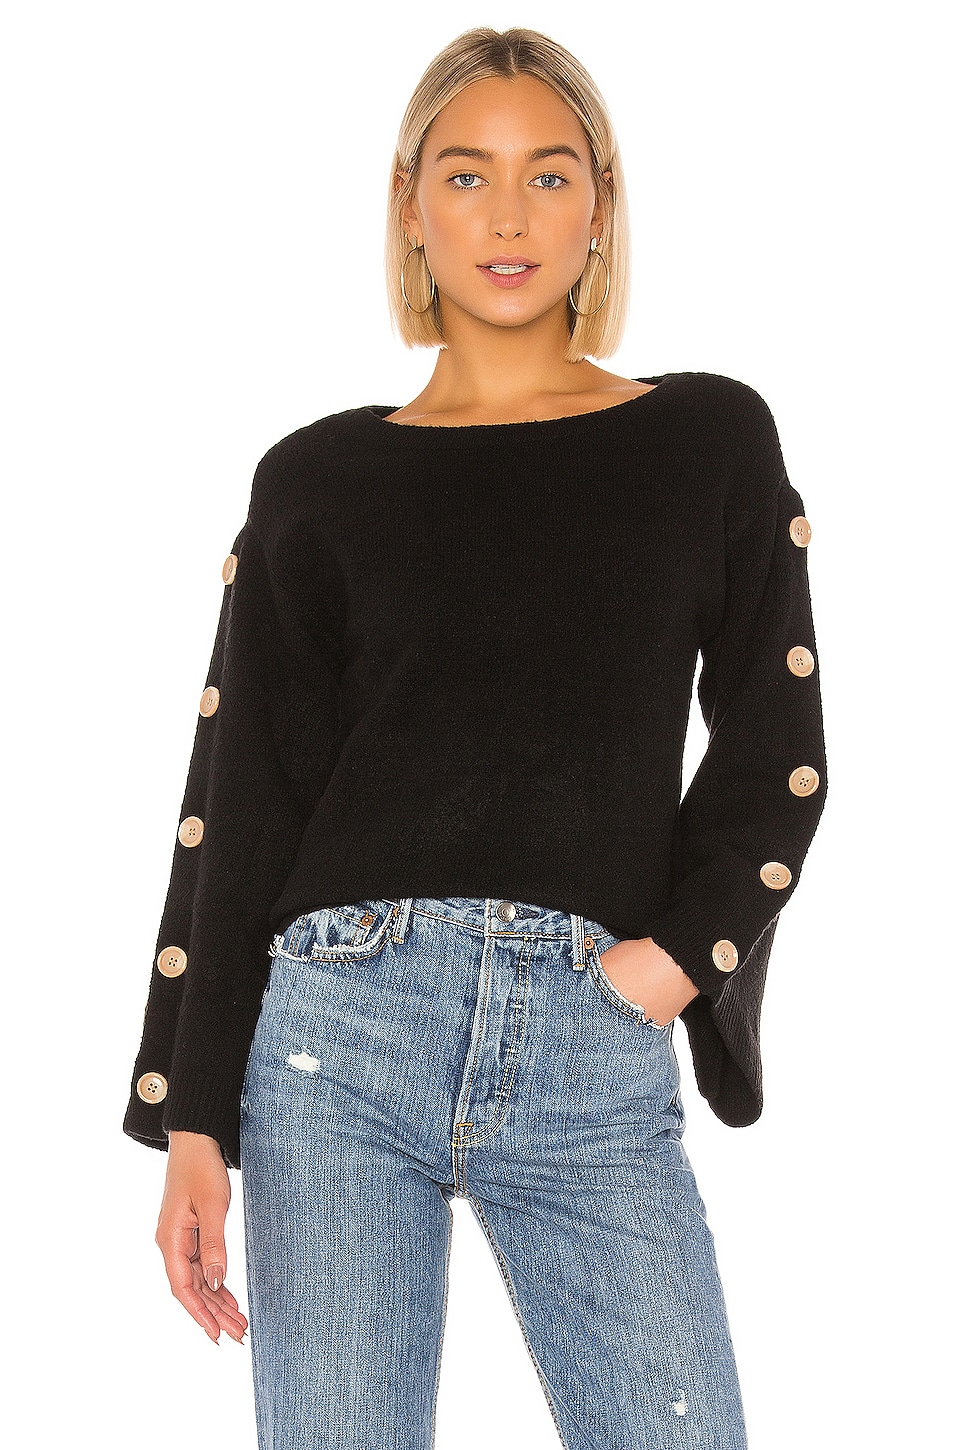 Tularosa Trento Button Sweater in Black